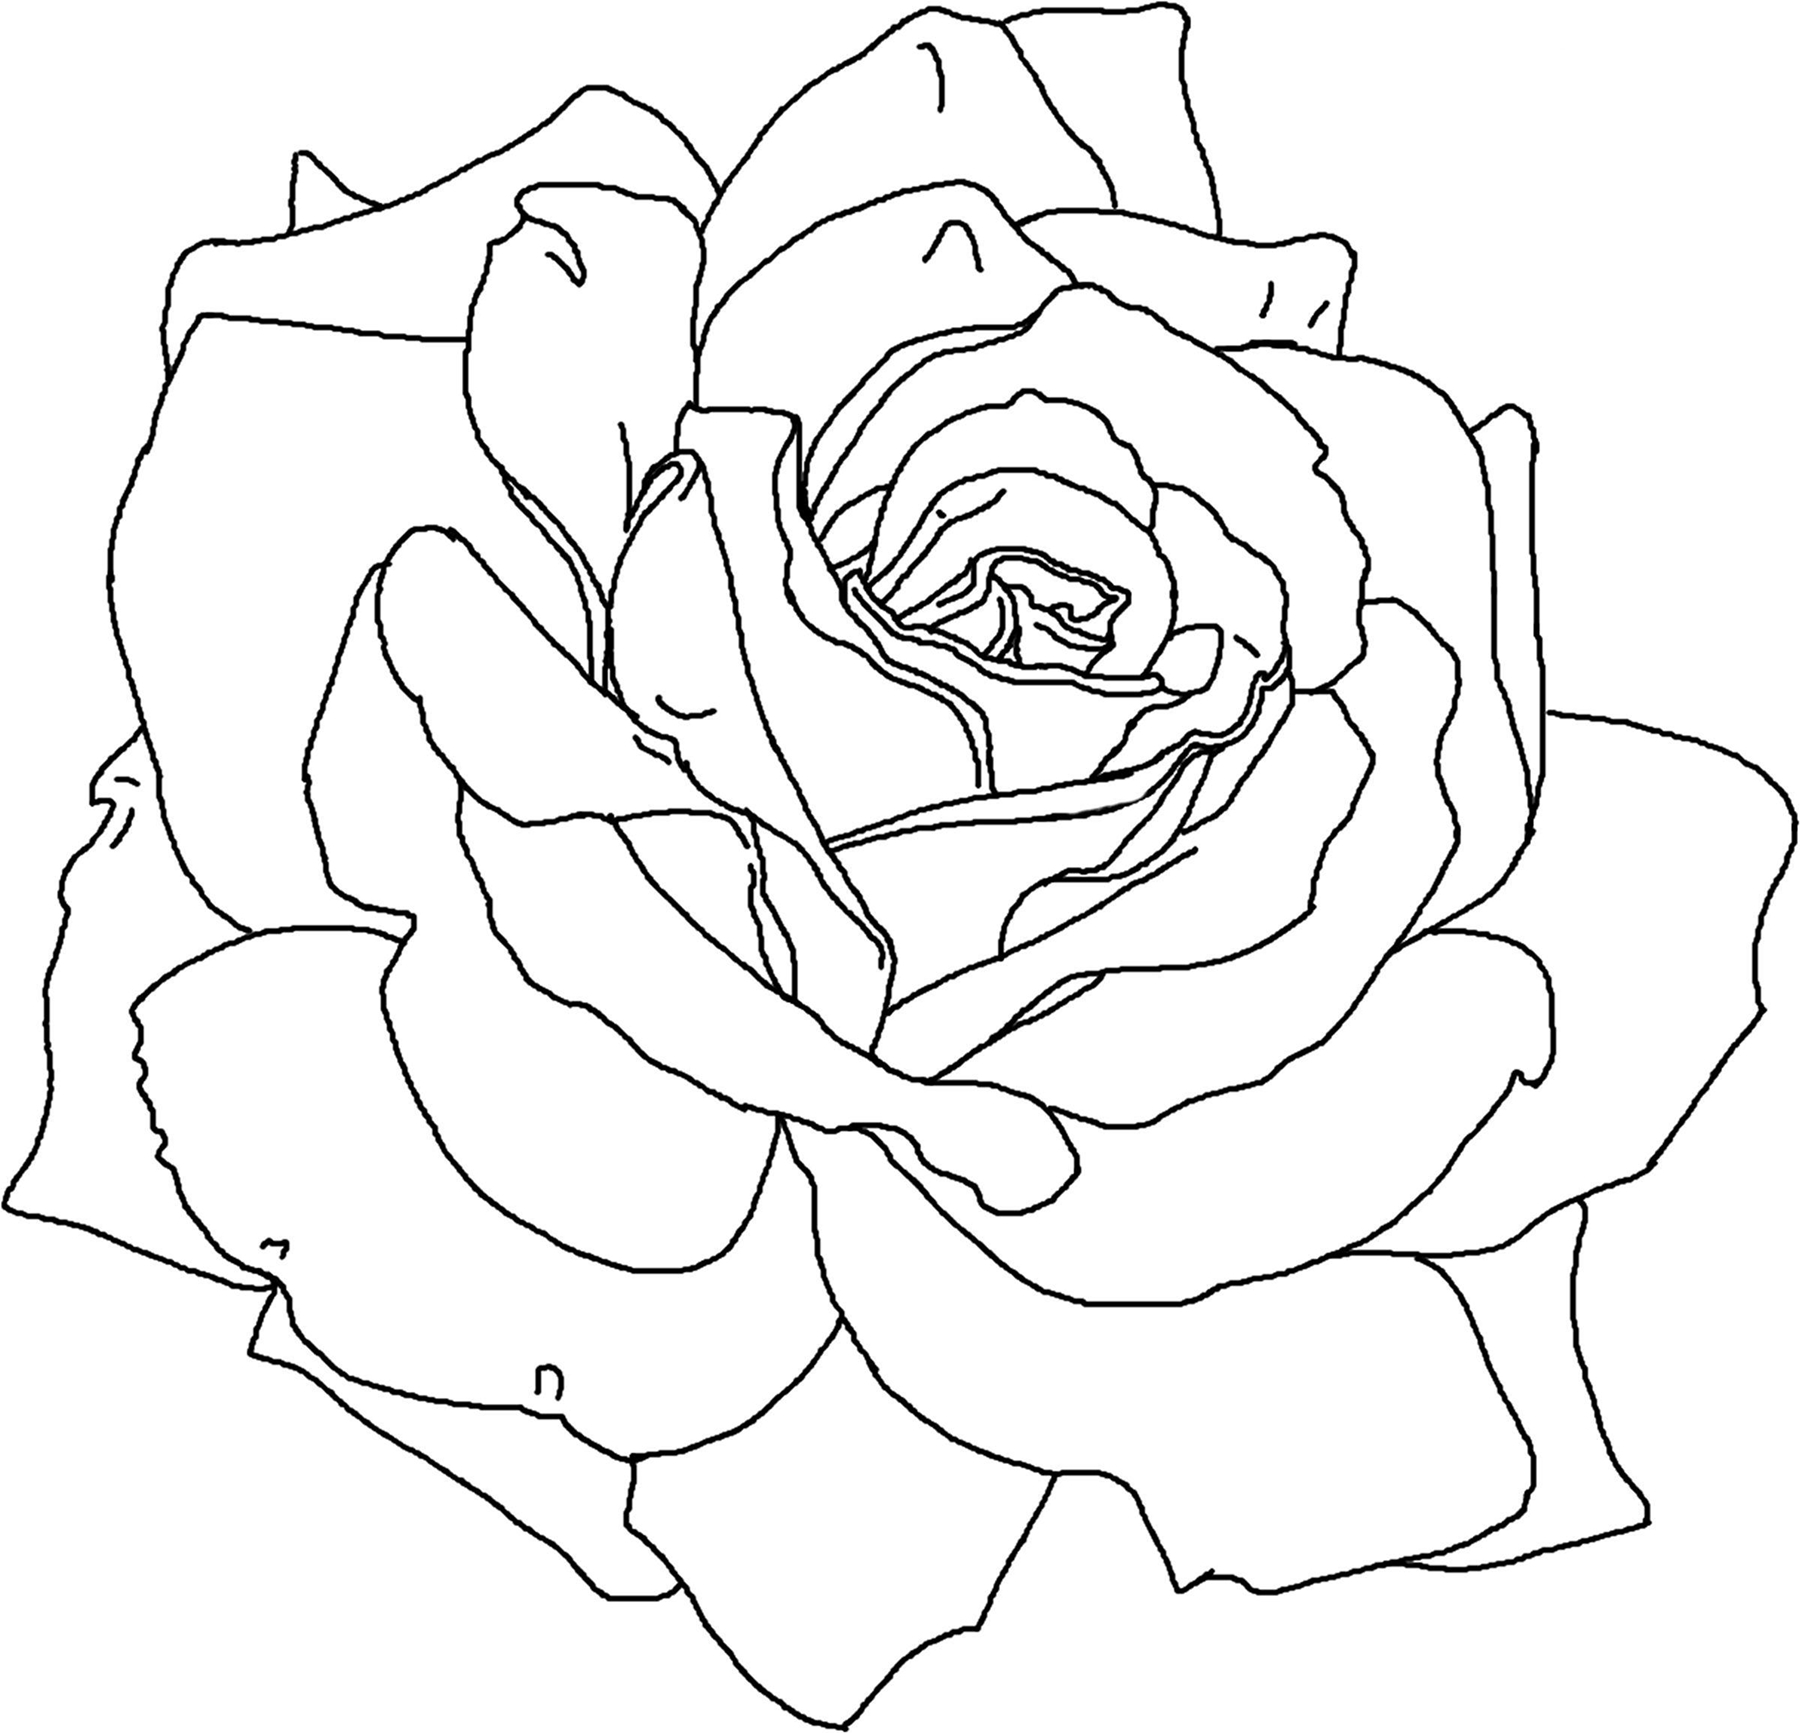 outline pictures flowers coloring pages for kids | Free Printable Flower Coloring Pages For Kids - Best Coloring Pages For Kids